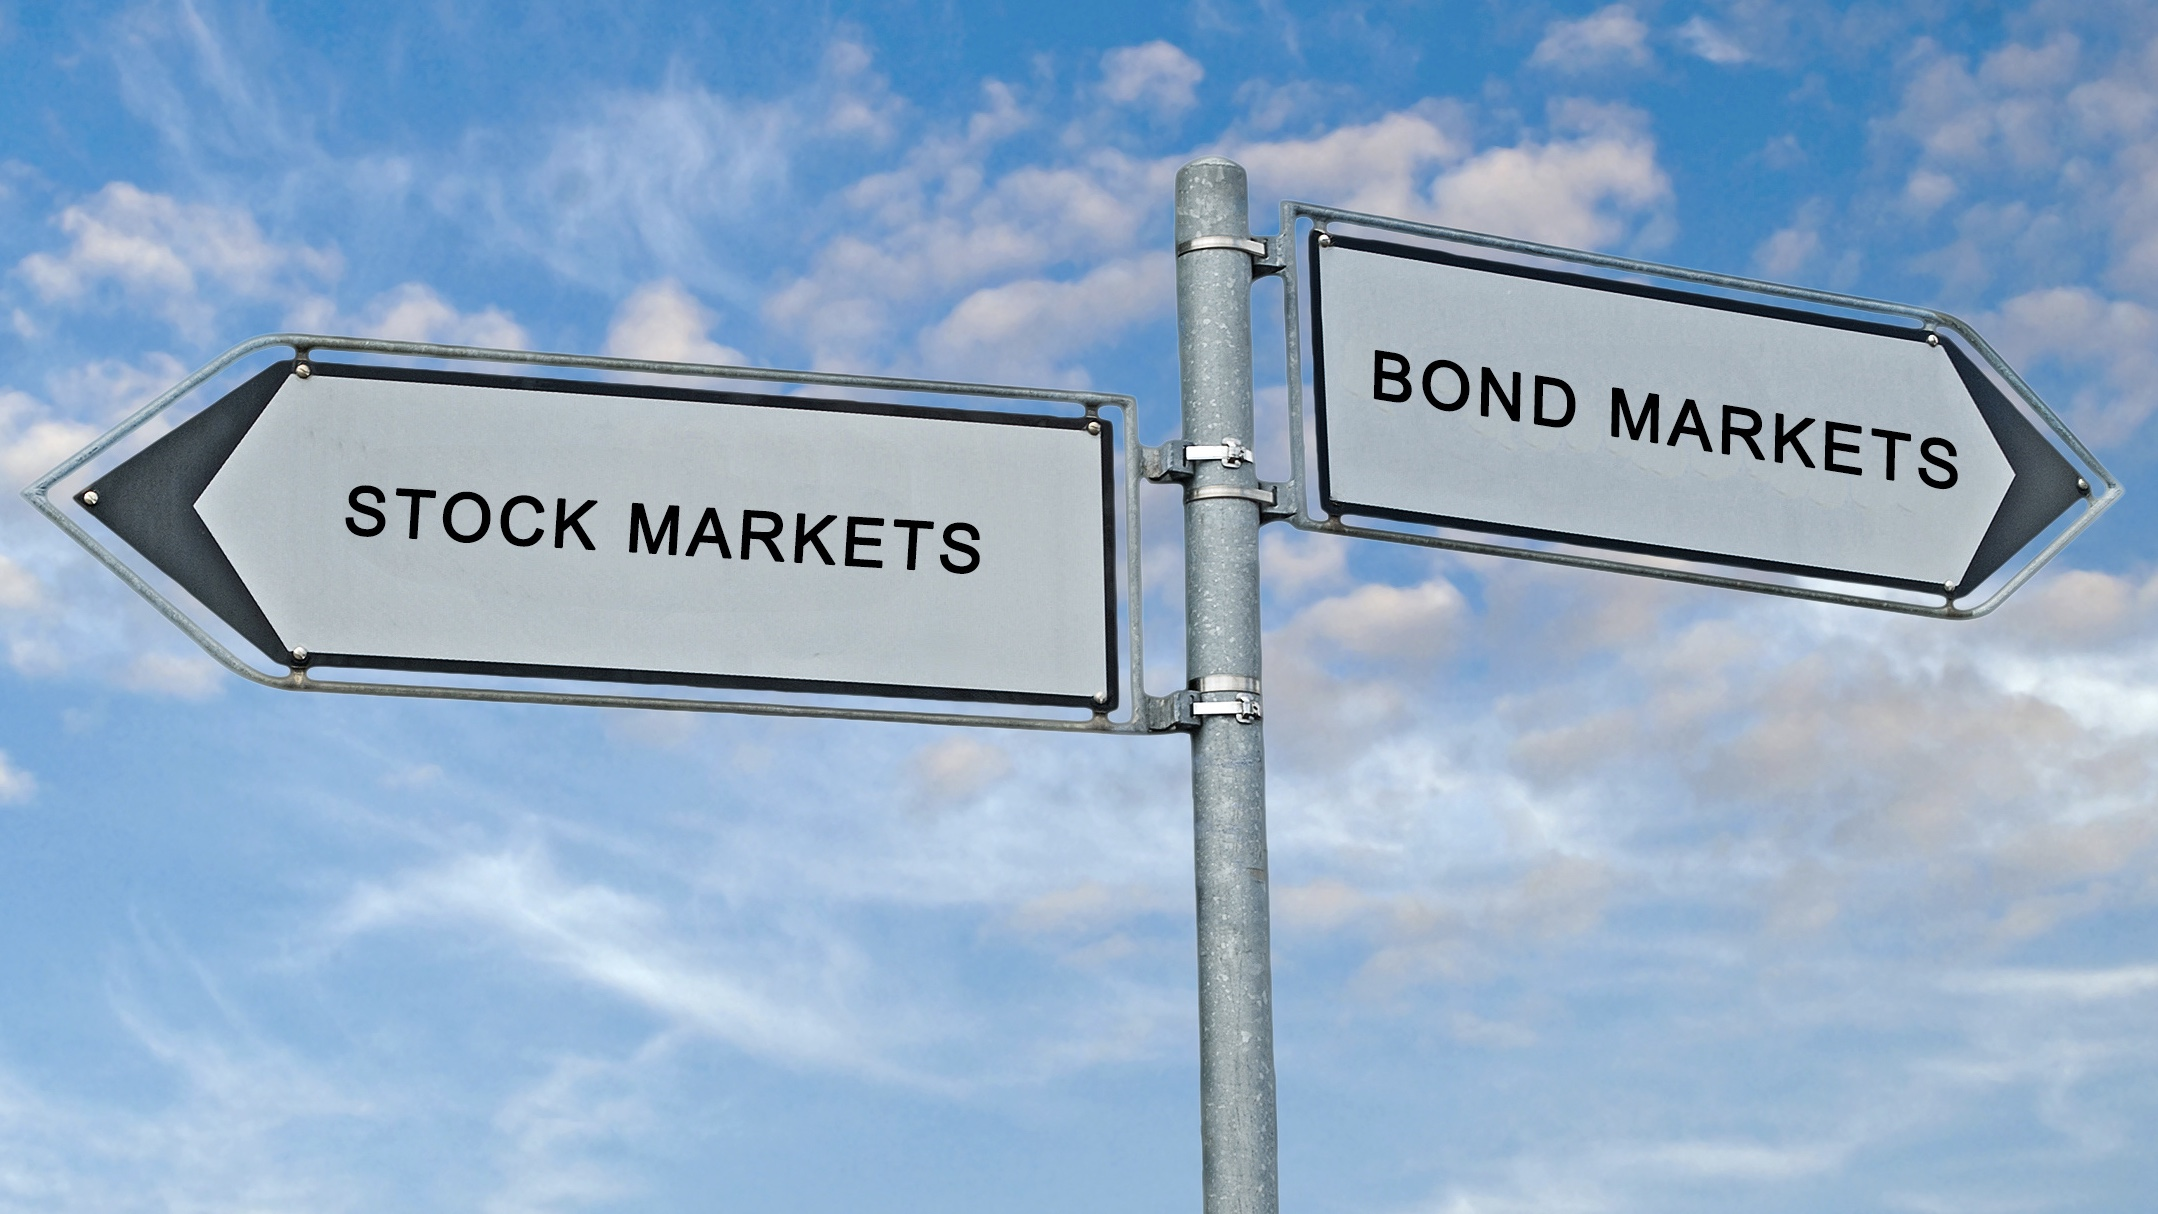 Stocks and bonds are currently sending mixed market signals.